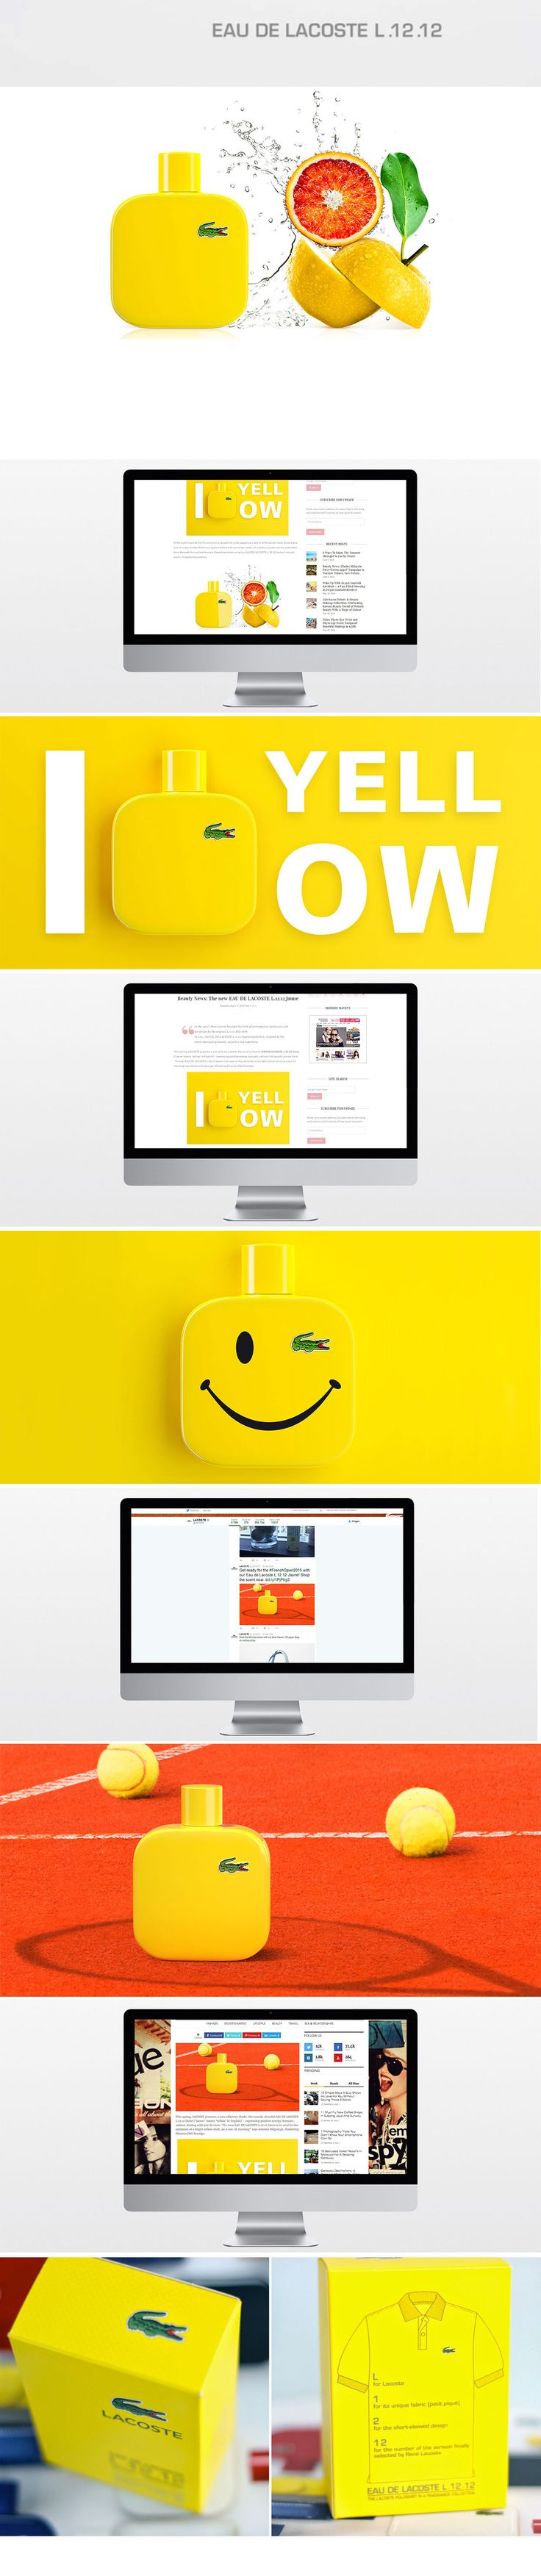 Designing Social Media Assets for Lacoste L.12.12 Jaune – #fragrance, #lacoste #yellow #creative #design #packshoot #photoshop #photography #graphicdesign #cerativedirection